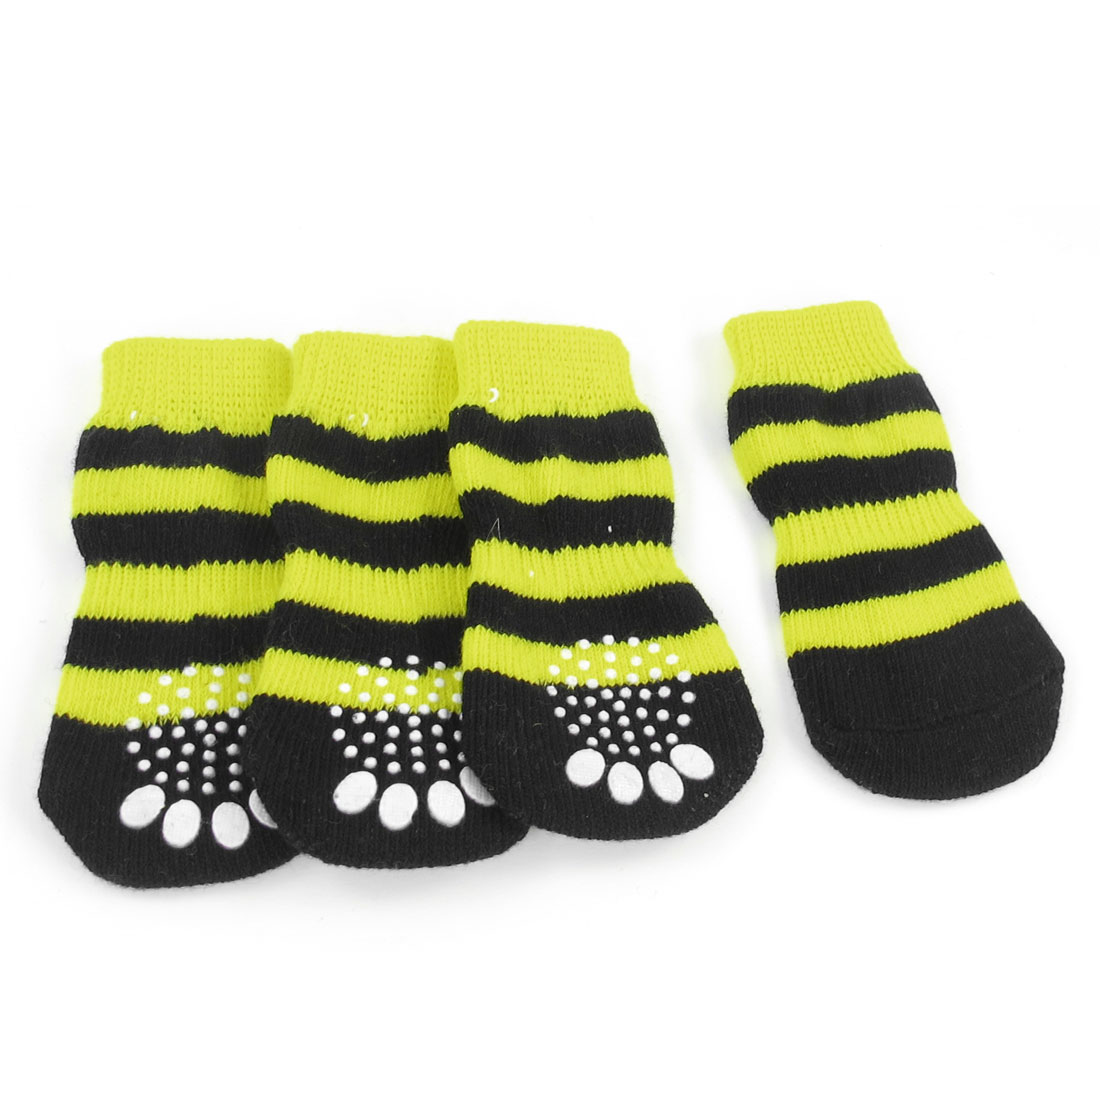 2 Pairs Size L Paw Pattern Elastic Nonslip Pet Dog Puppy Socks Yellow Black